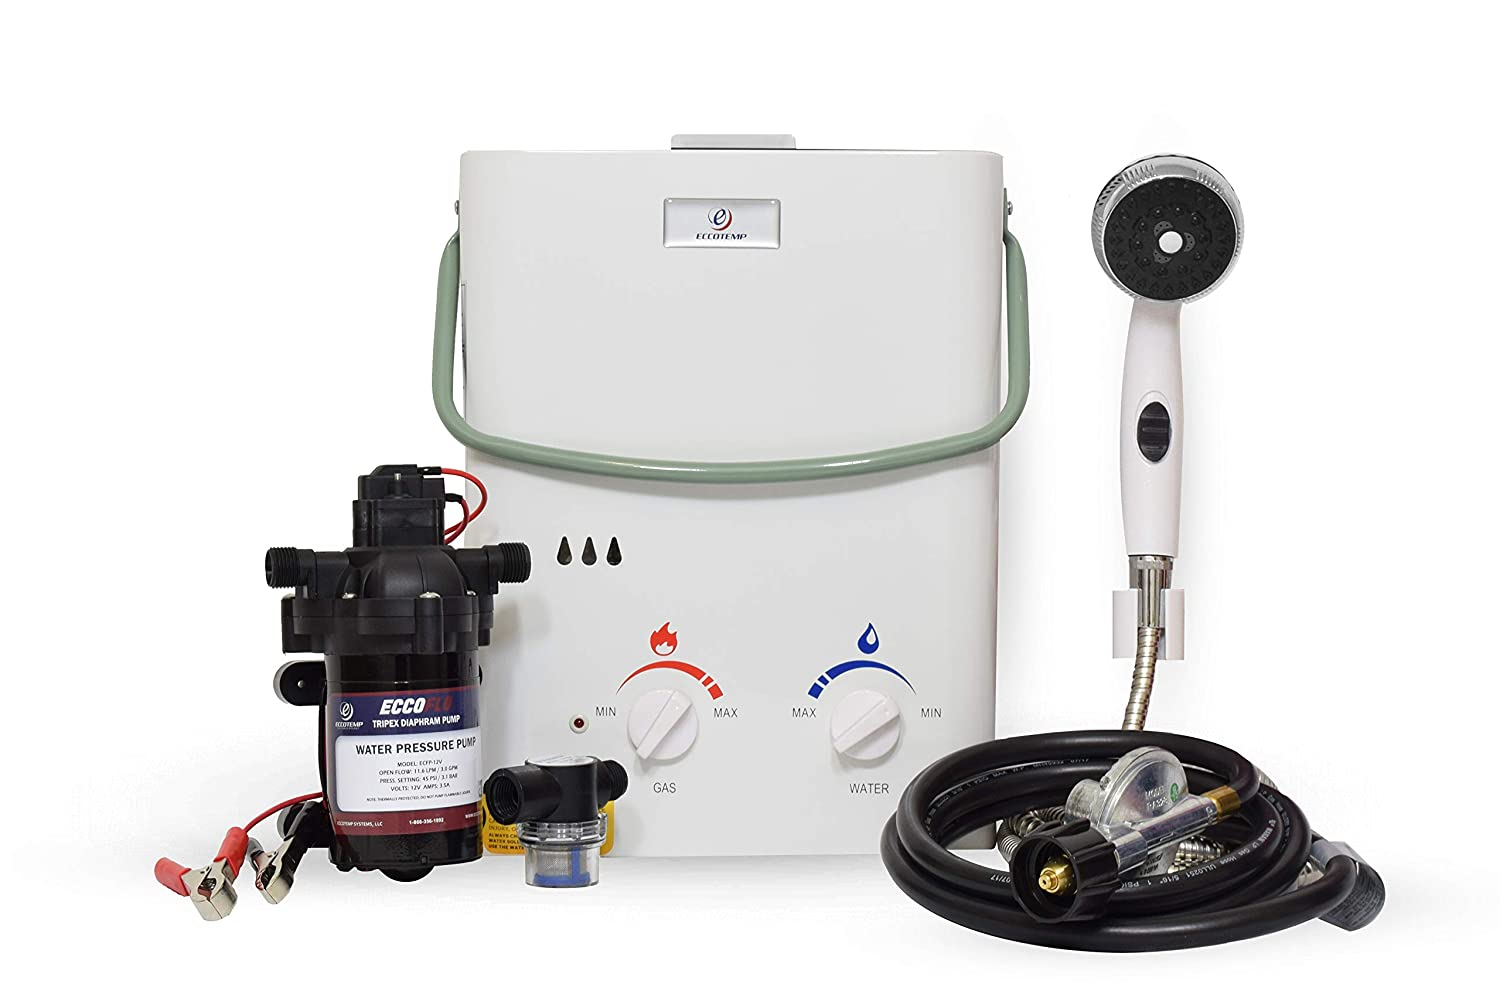 Eccotemp L5 Portable Outdoor Tankless Water Heater w/EccoFlo Diaphragm 12V Pump and Strainer